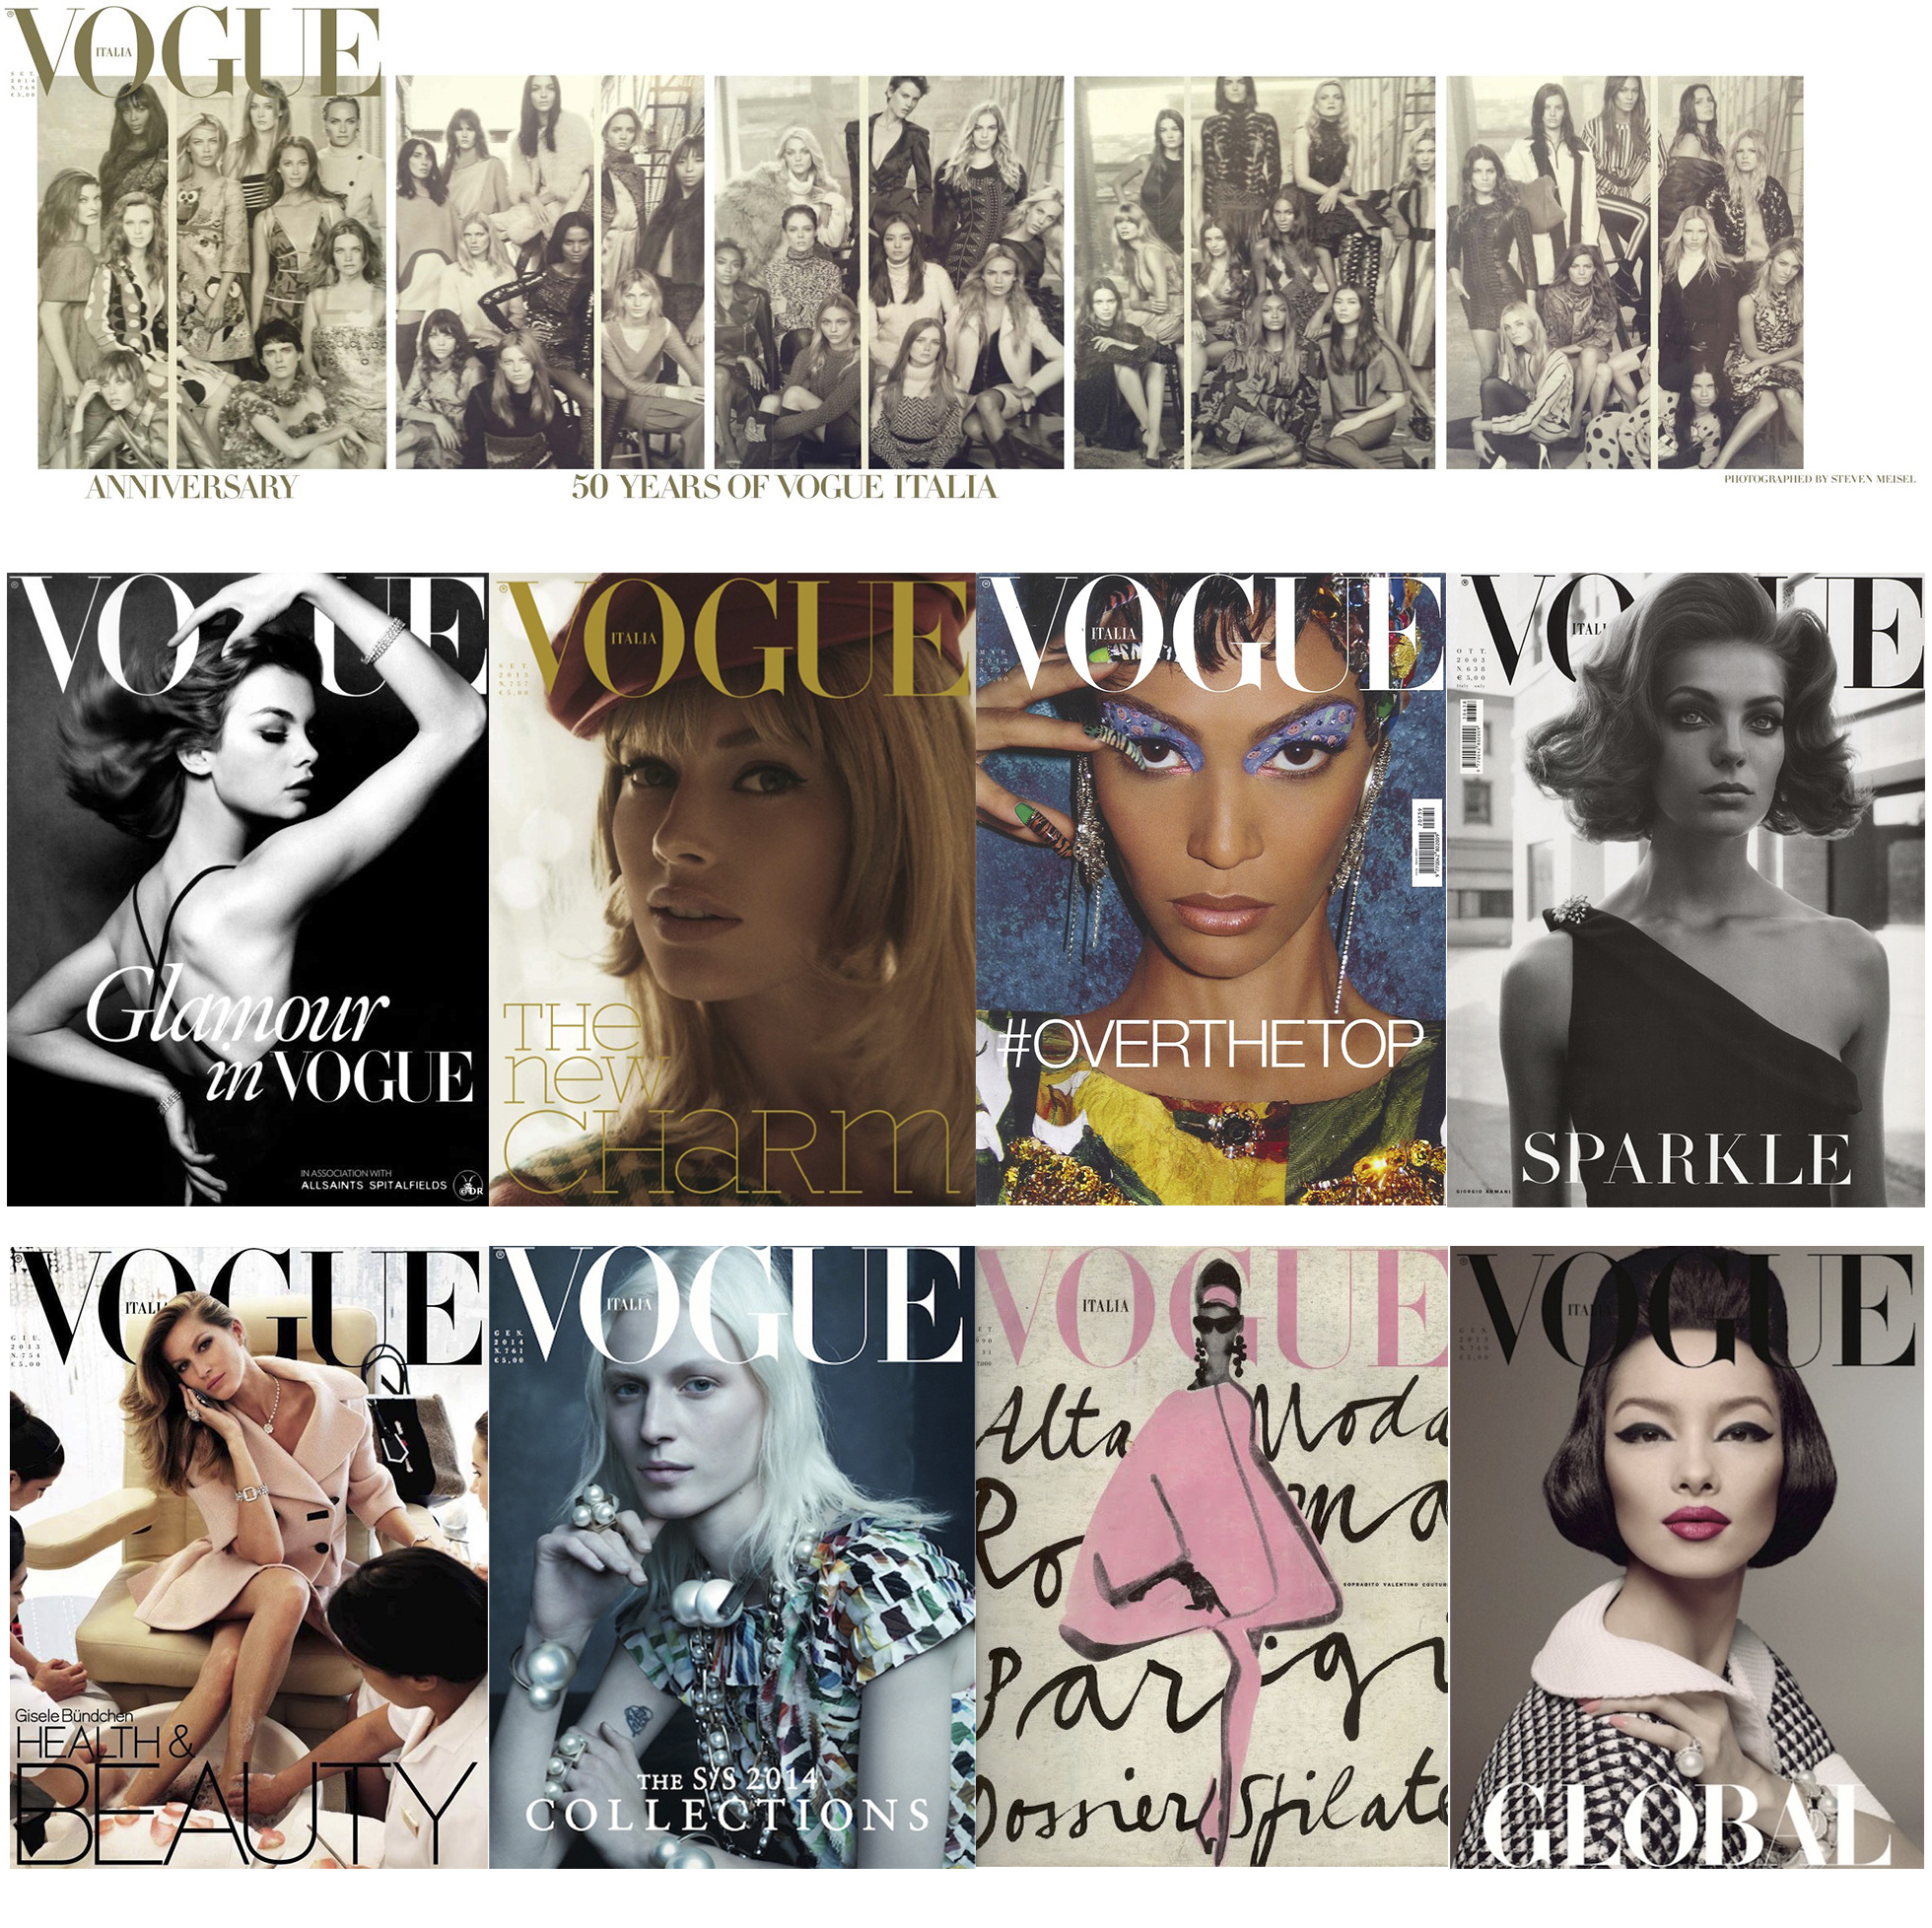 vogue-50years-anniversary-inspiration-covers-italian vogue-vogue italia